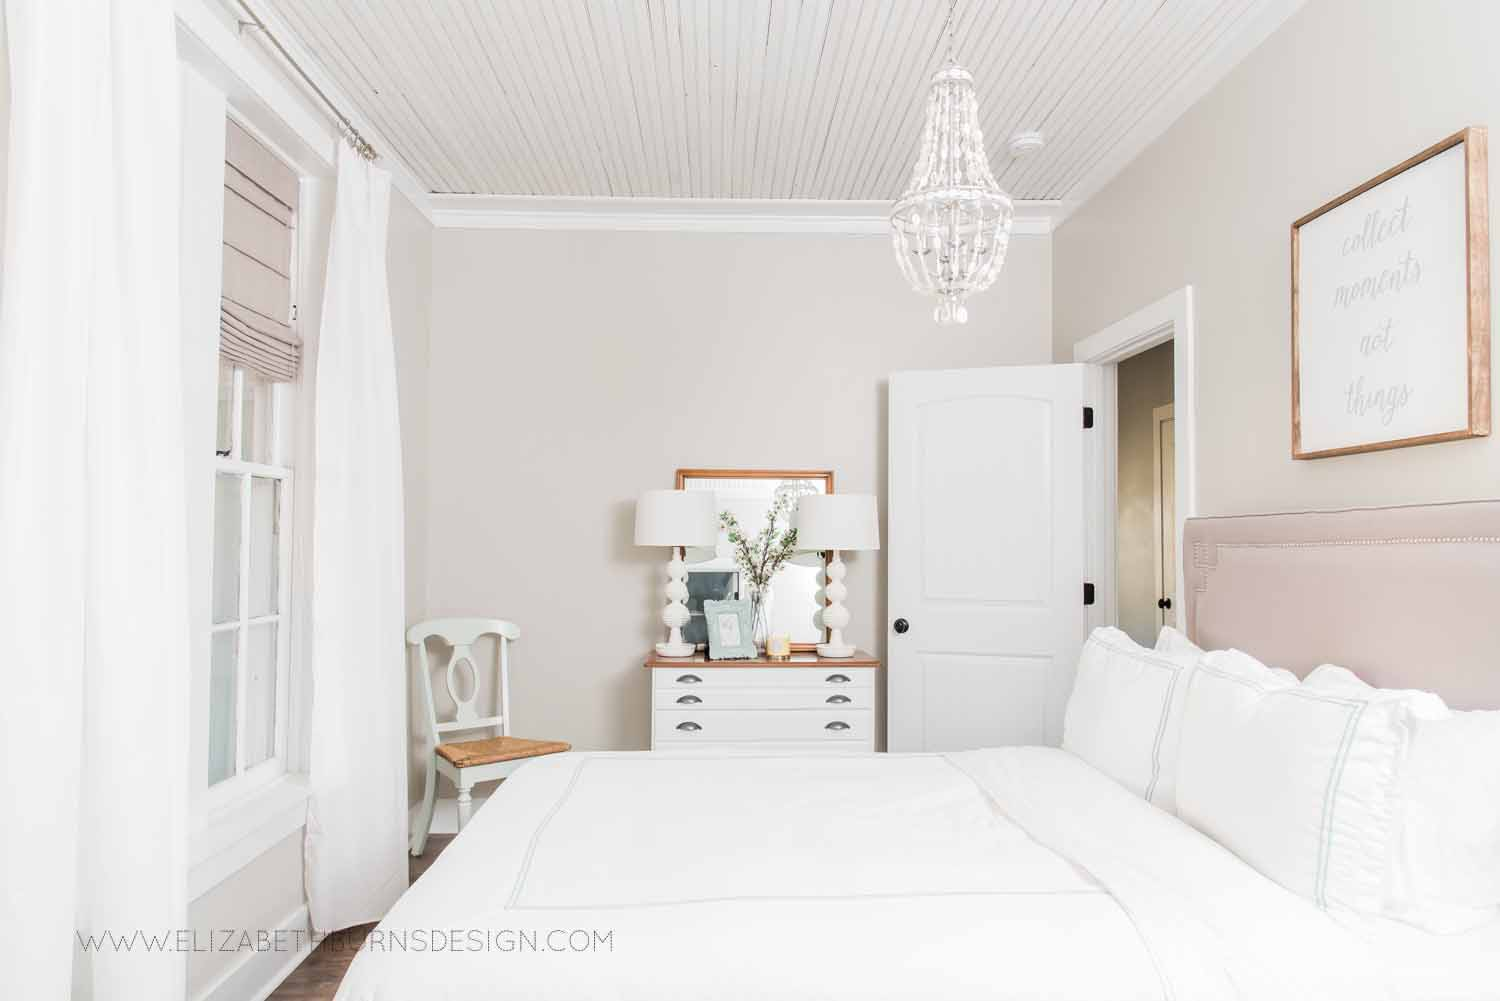 Elizabeth Burns Design Raleigh Interior Designer  Farmhouse Fixer Upper Cottage Renovation, Sherwin Williams Agreeable Gray SW 7029 Traditional Guest Bedroom.jpg